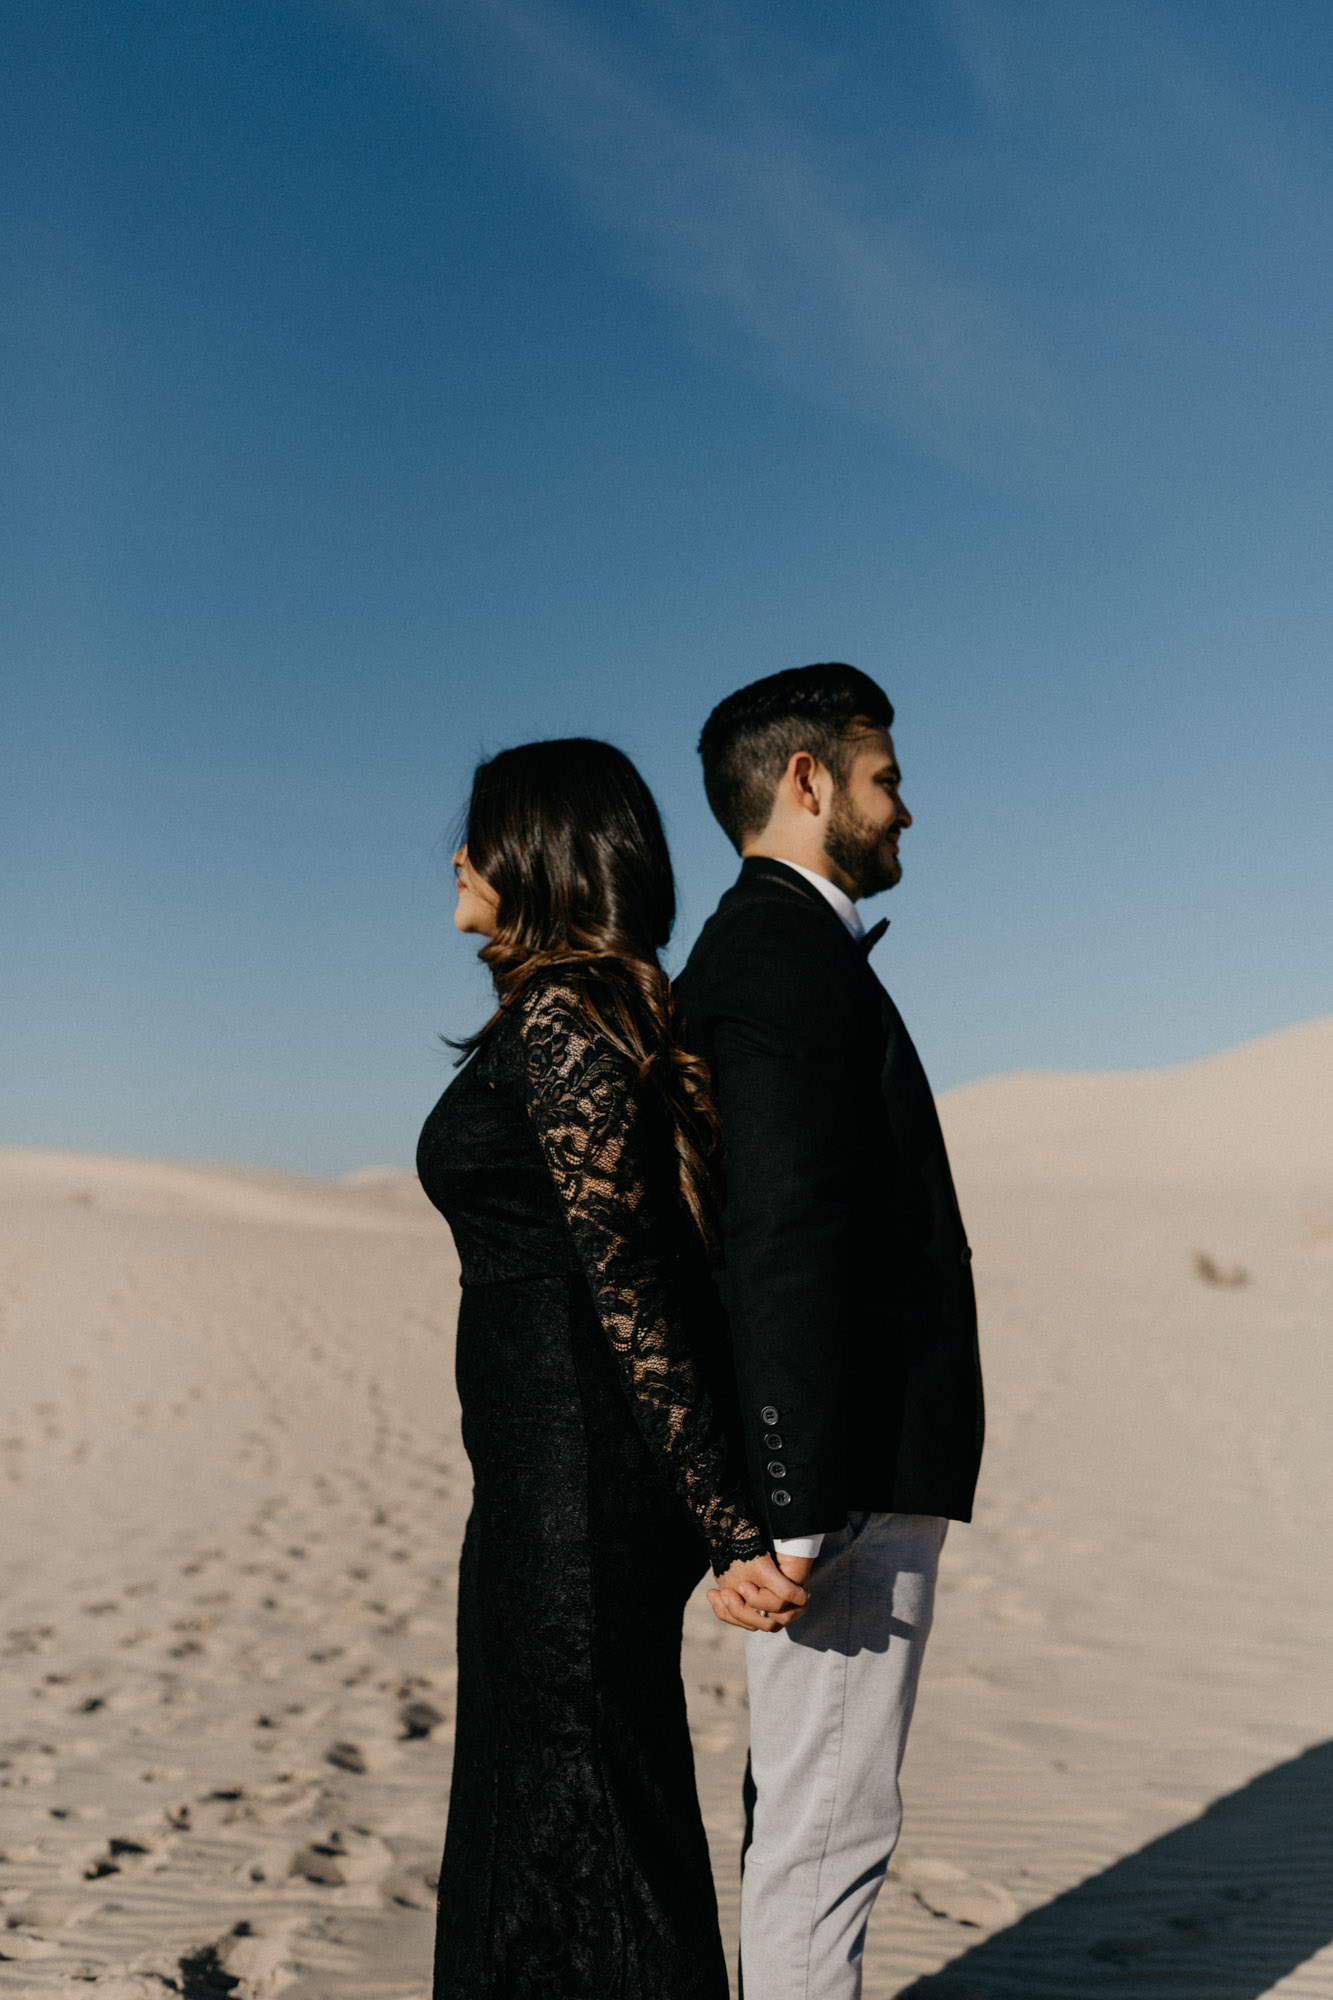 Couples poses for engagement session - ideas for a wedding photographer